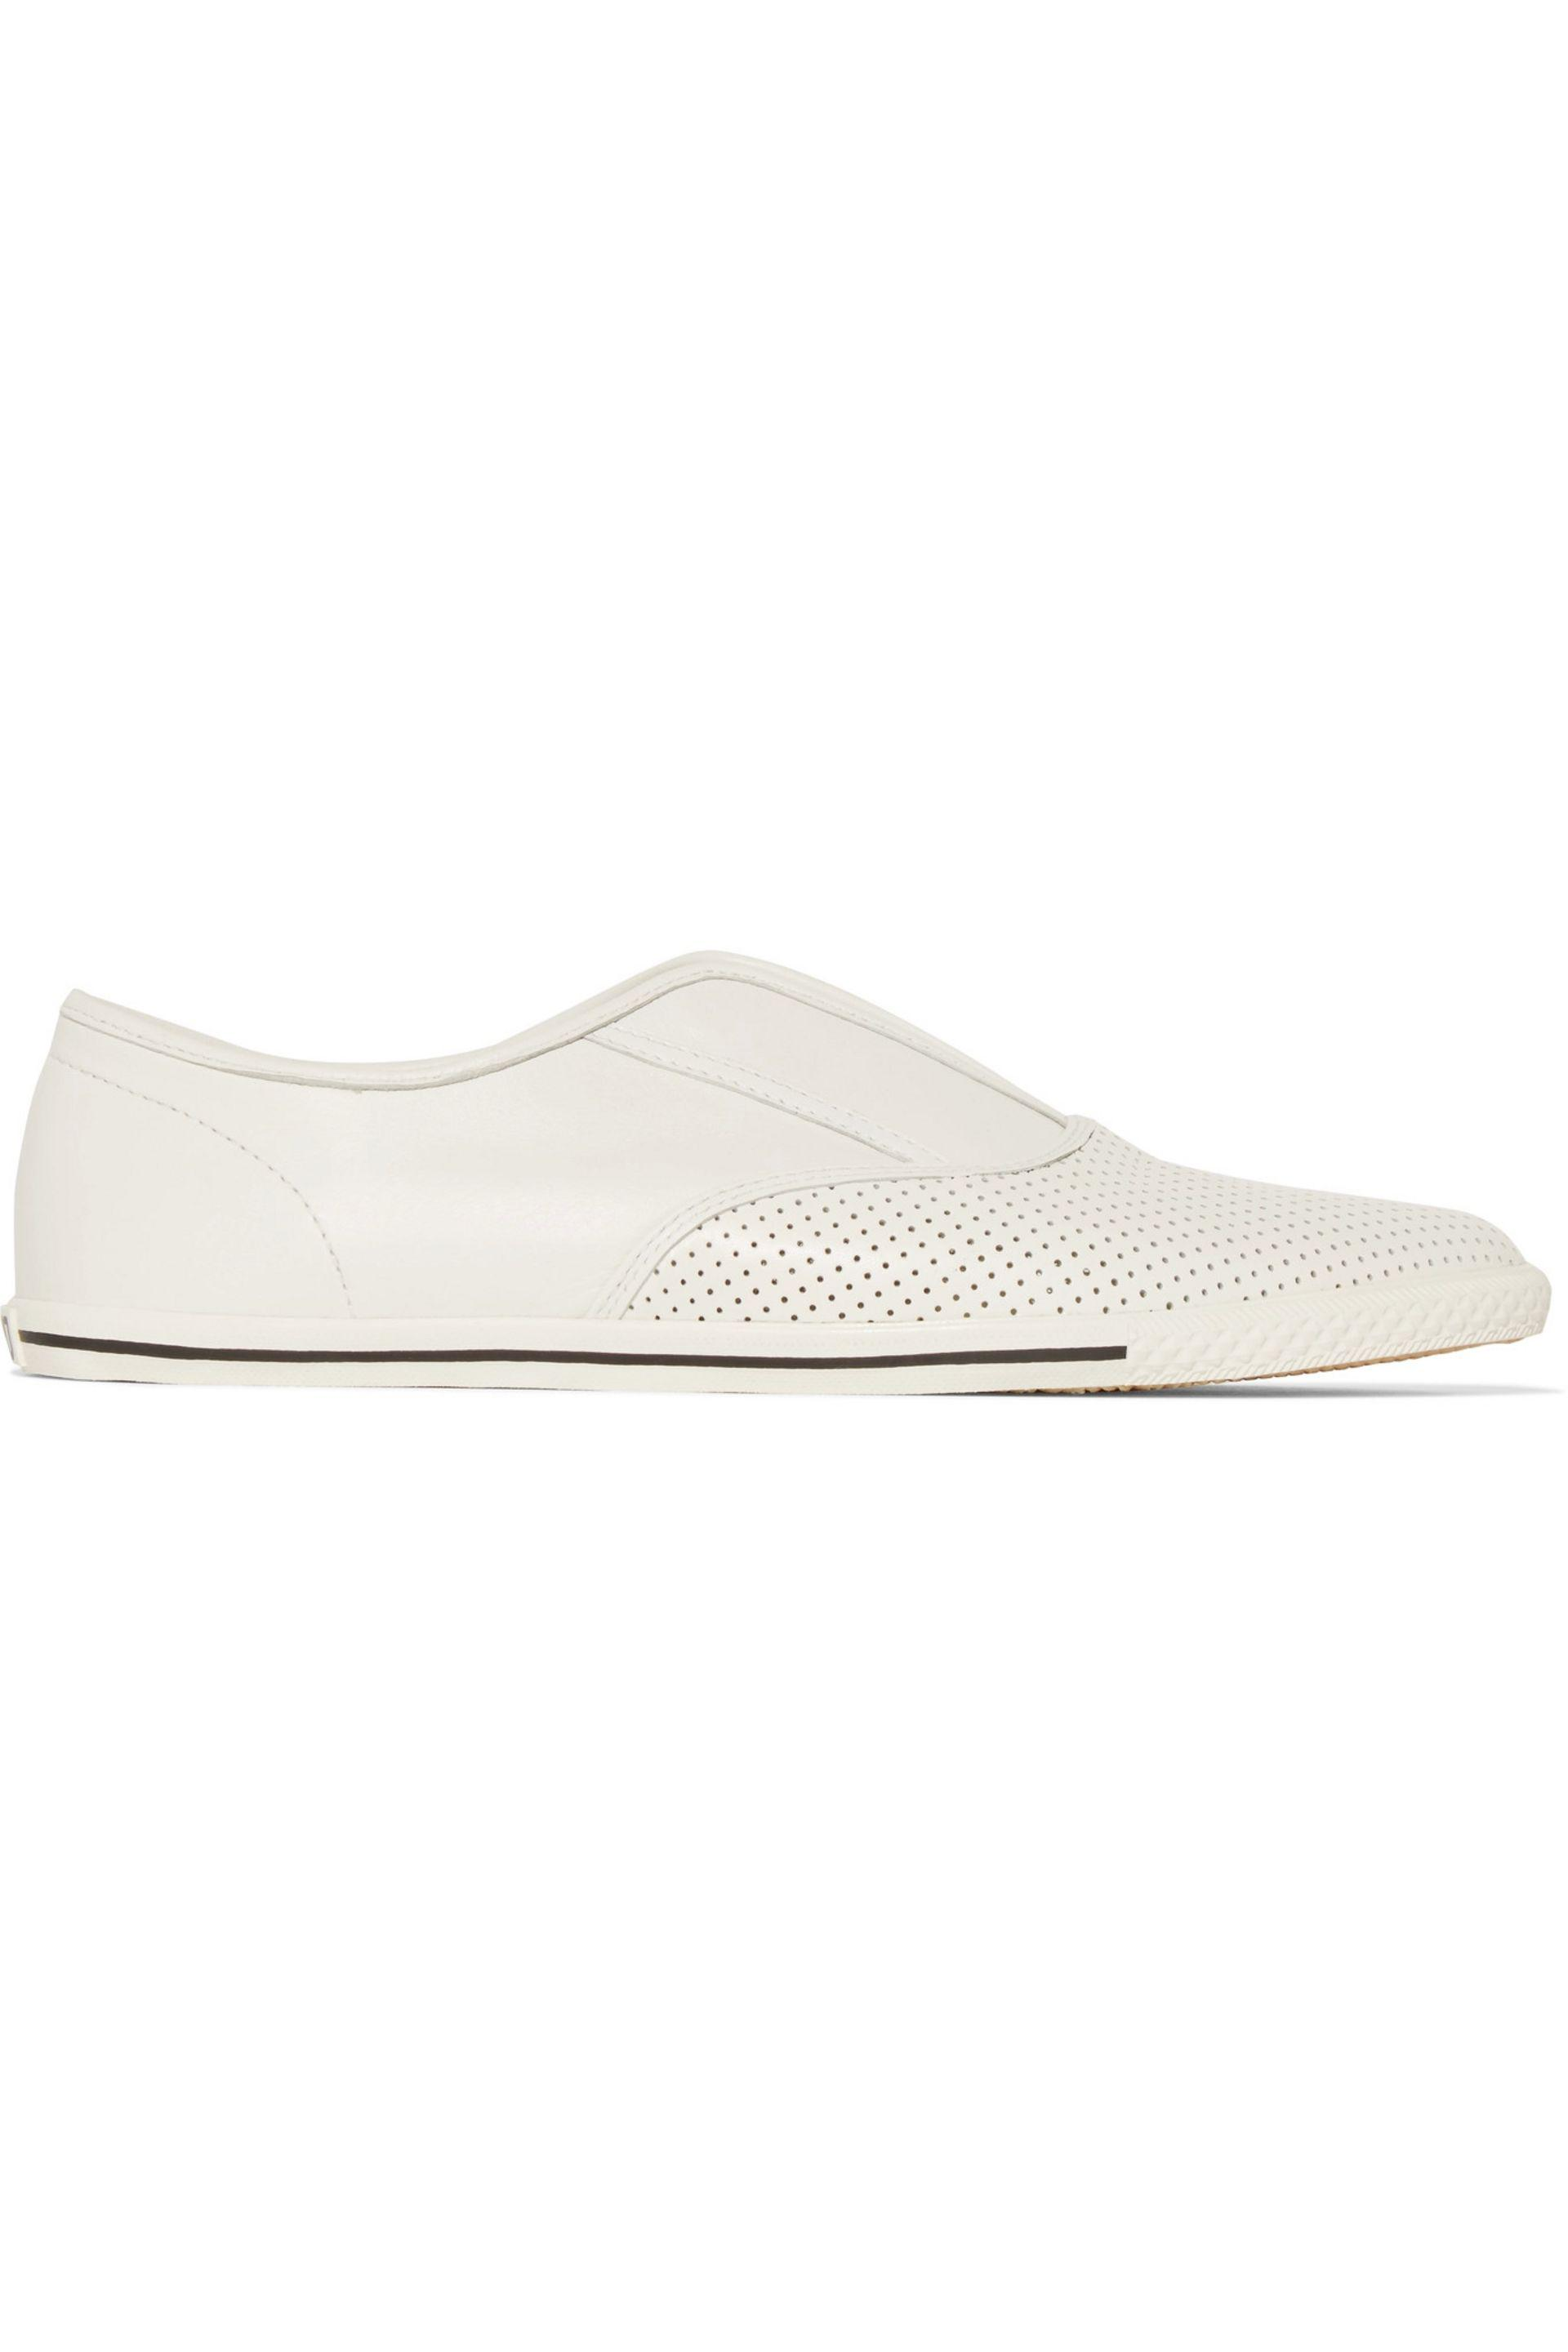 01531dca3243 Lyst - Marc By Marc Jacobs Woman Codie Leather Slip-on Sneakers ...